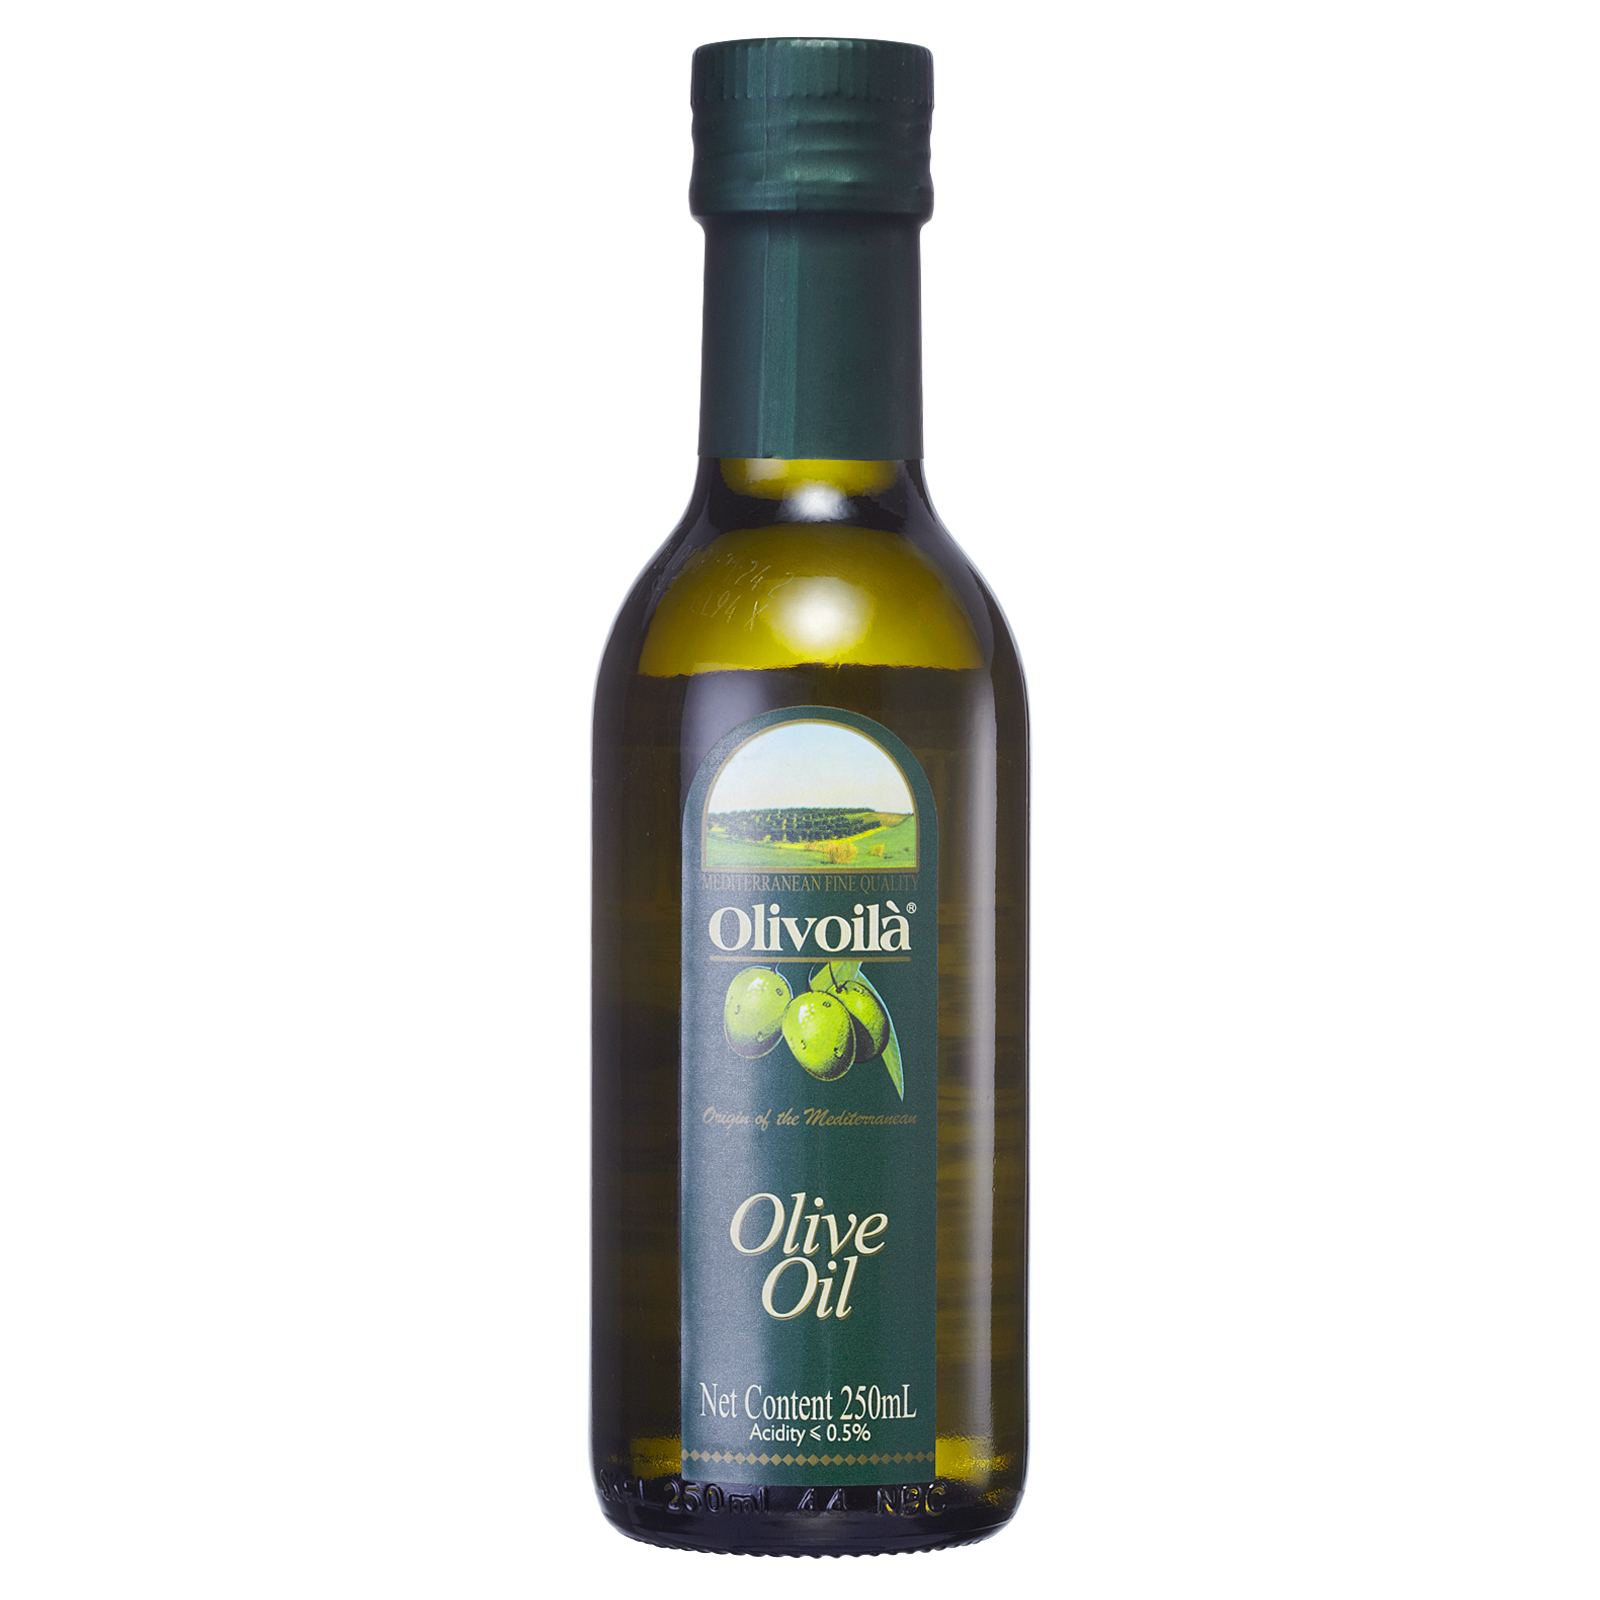 Ouliweilan pure olive oil 250 ml/bottle of olive oil